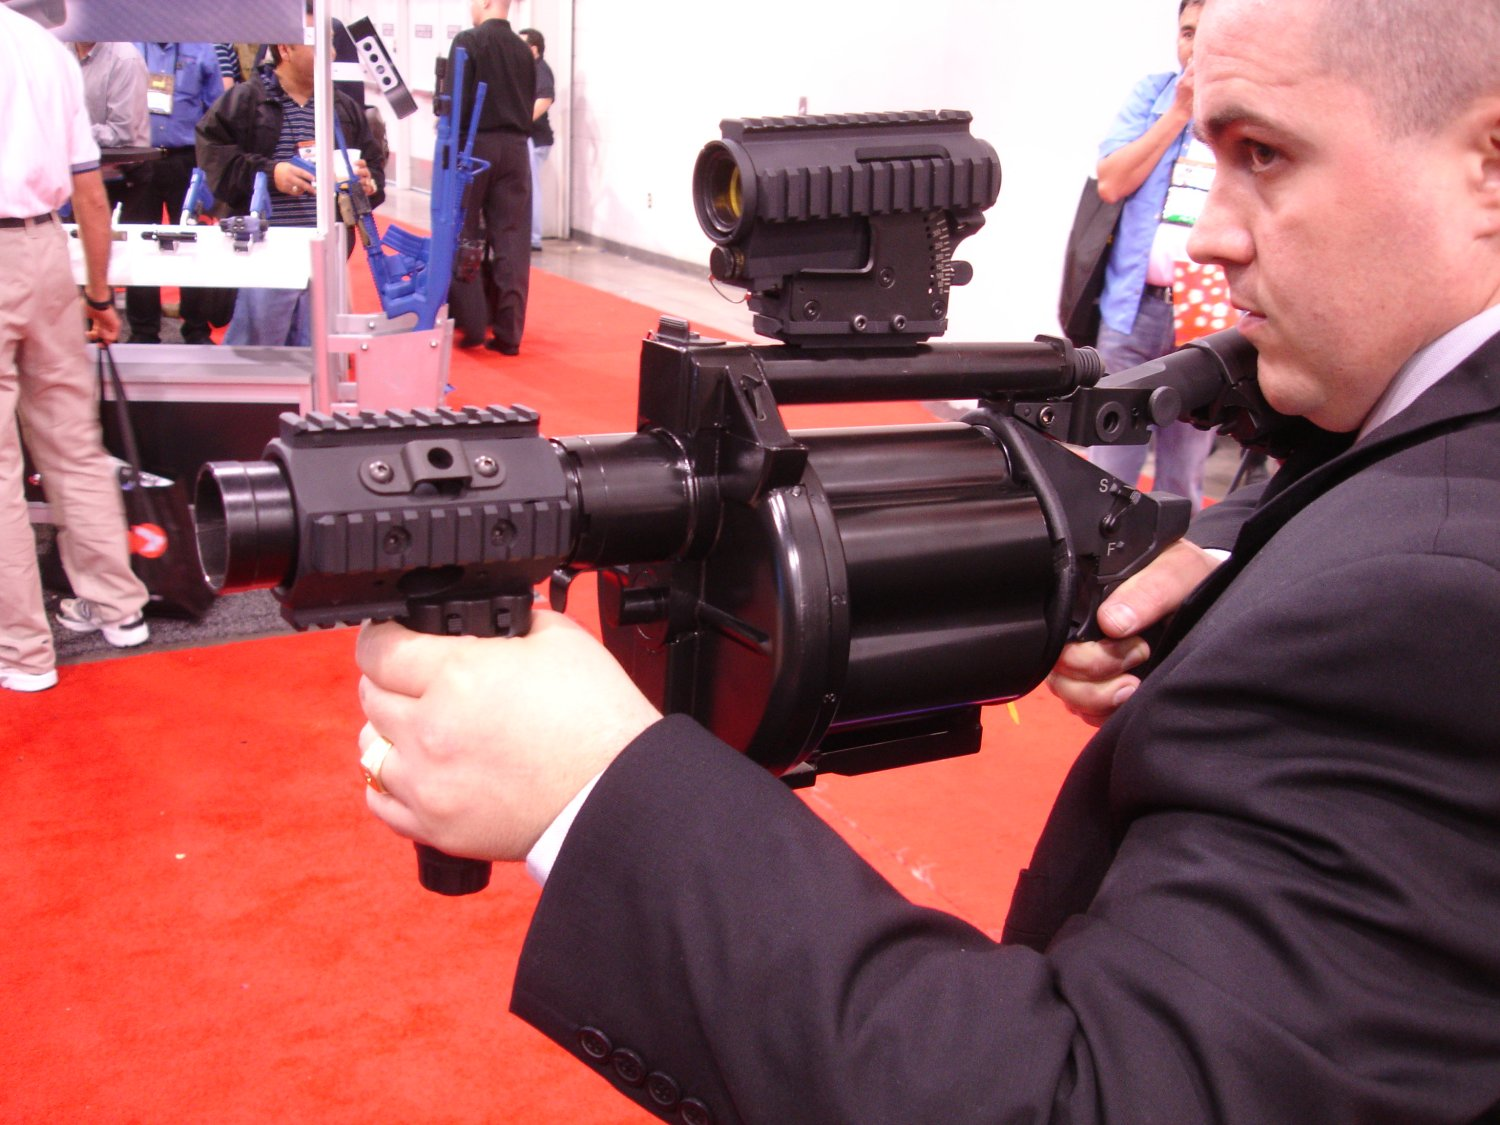 Milkor MGL 15 SHOTShow2008 2 02 08 <!  :en  >Milkor USA Shorty 40mm Multi Grenade Launchers at SHOT Show 2008: Milkor USA Mk14 Mod0 MSGL Prototype Weapon<!  :  >